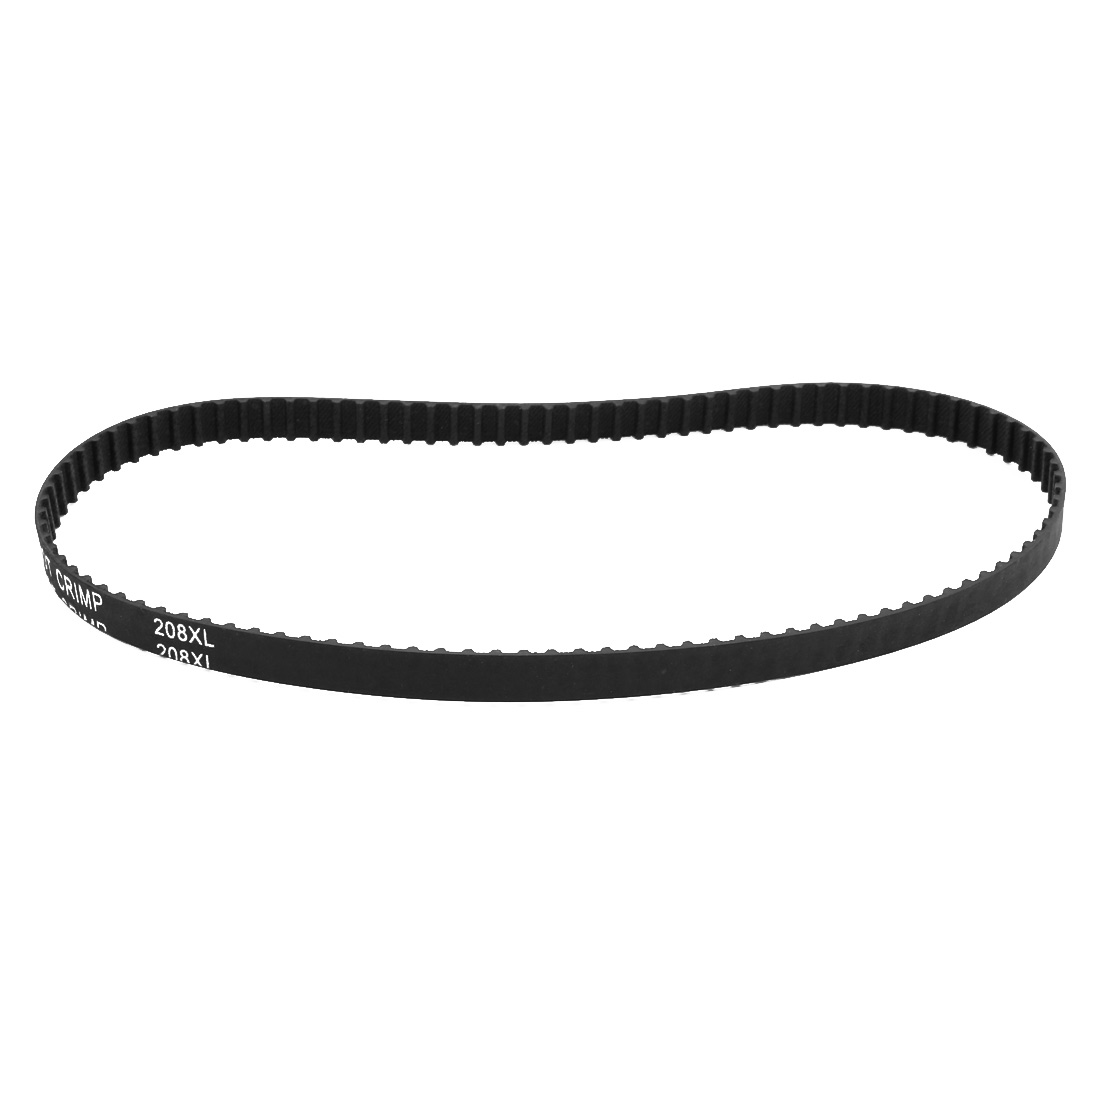 208XL 104 Teeth 10mm x 5.08mm Rubber Timing Geared Belt for Stepper Motor Black